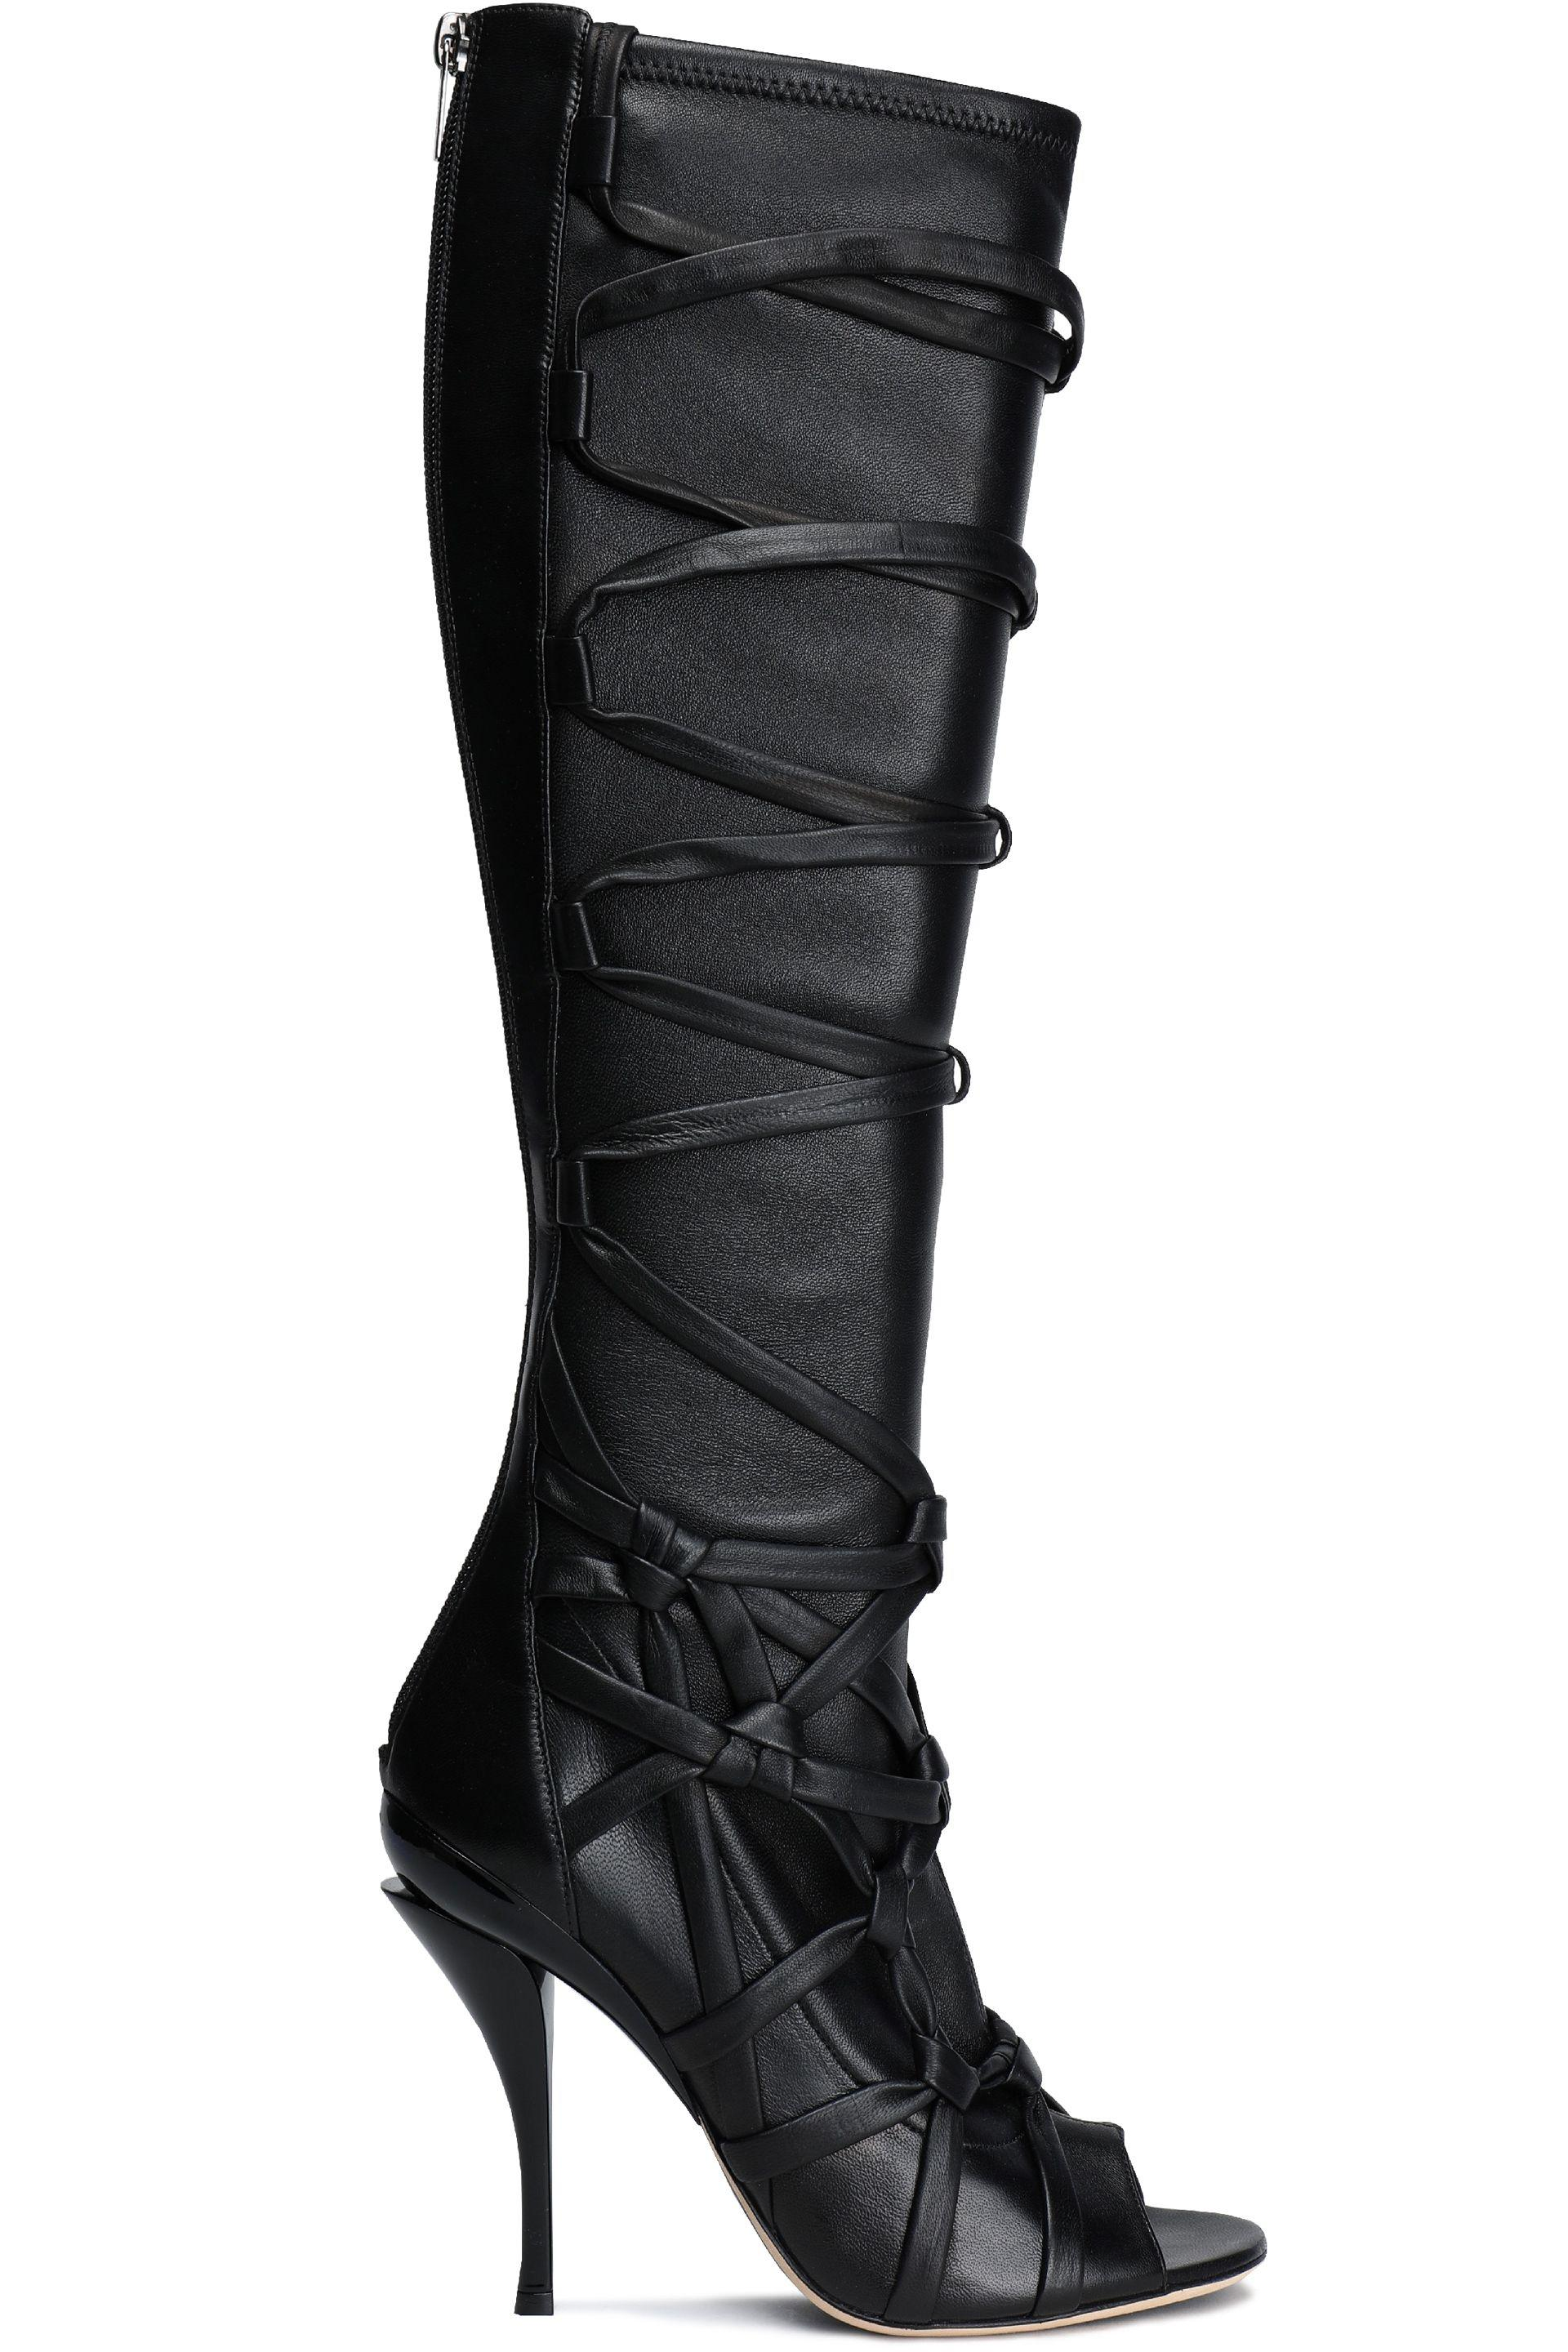 acdc8f56e0e Jimmy Choo Lace Up Leather Boots in Black - Lyst